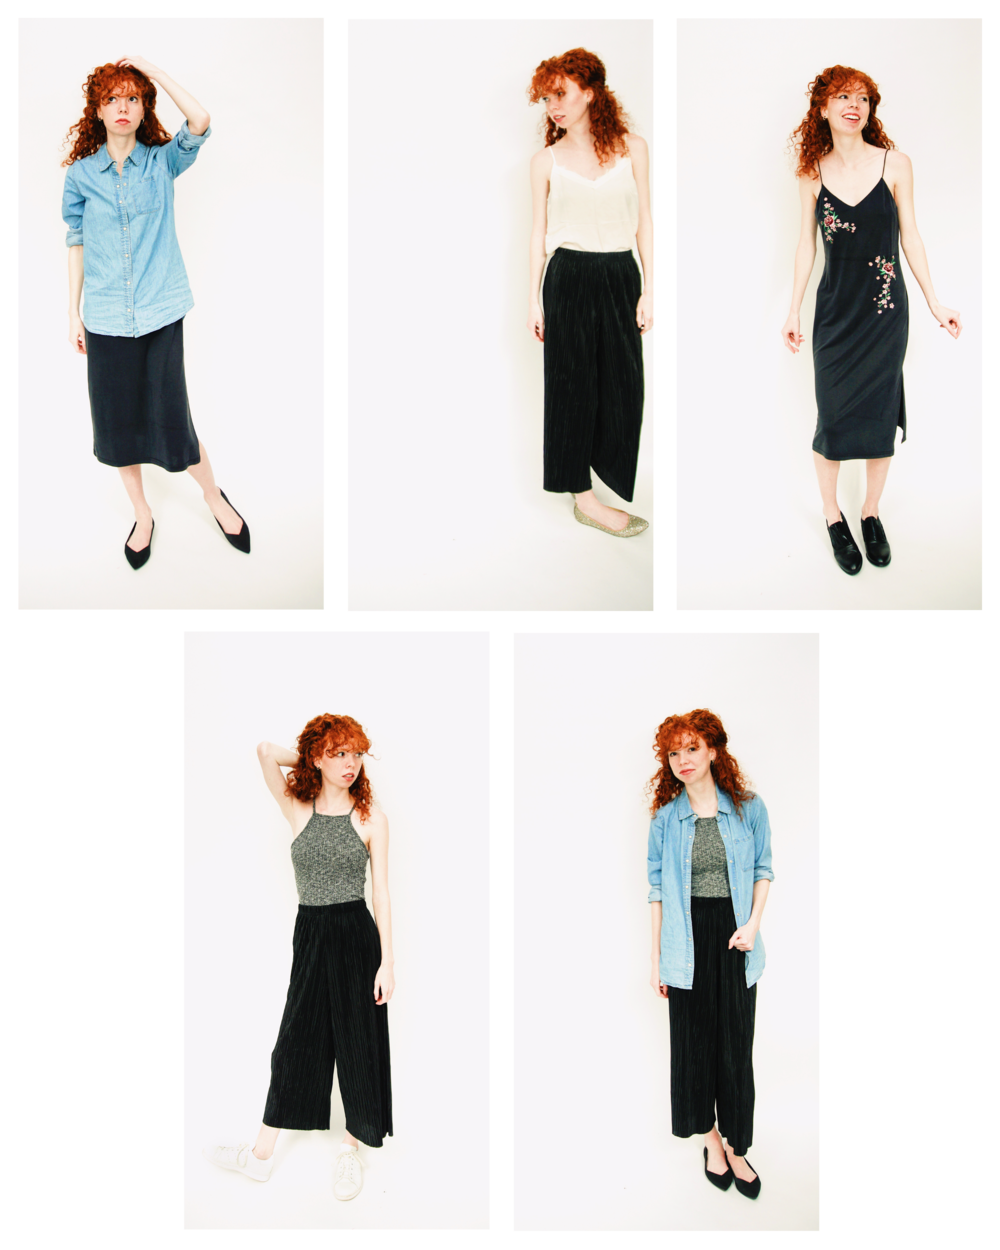 Keep it casual and chic with some wide leg pants and a chambray shirt. Throw on a midi dress or a knit top to take it up a notch and keep you rockin' this New Year!